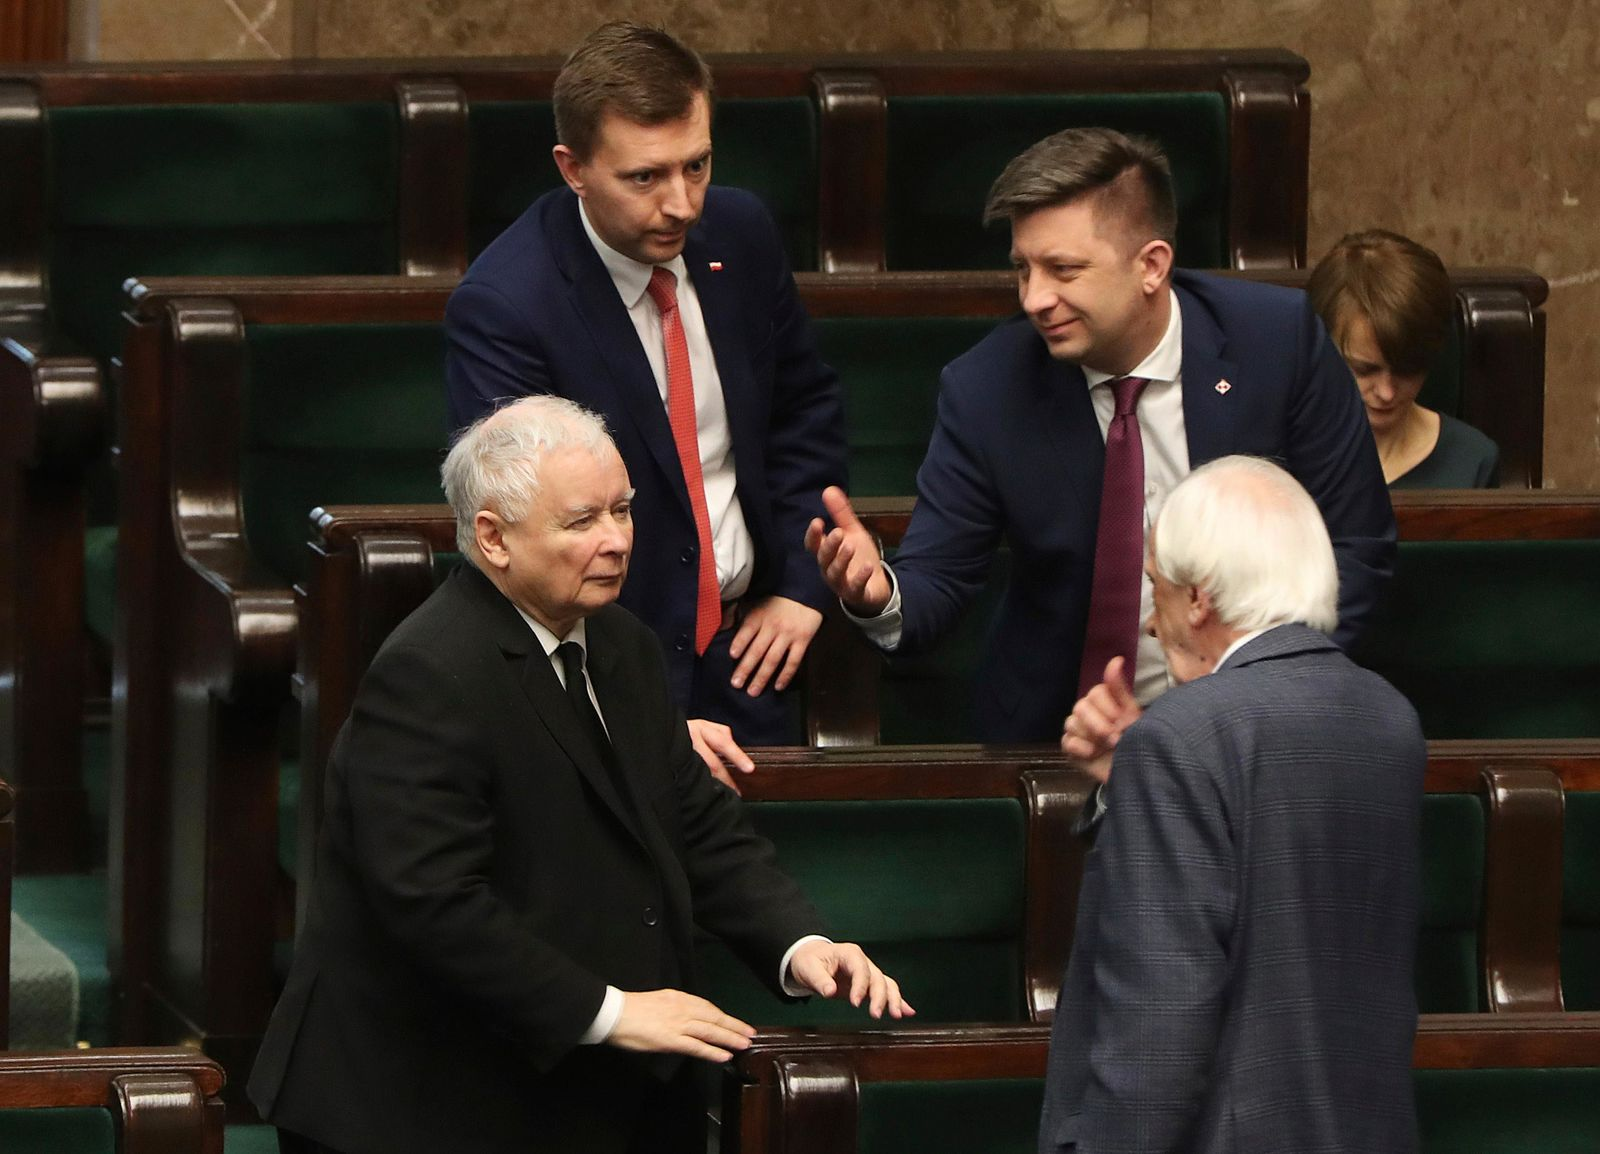 Jaroslaw Kaczynski,left, leader of the conservative ruling party Law and Justice, speaks with other members of his party in parliament in Warsaw, Poland, Friday April 3, 2020. .(AP Photo/Czarek Sokolowski)